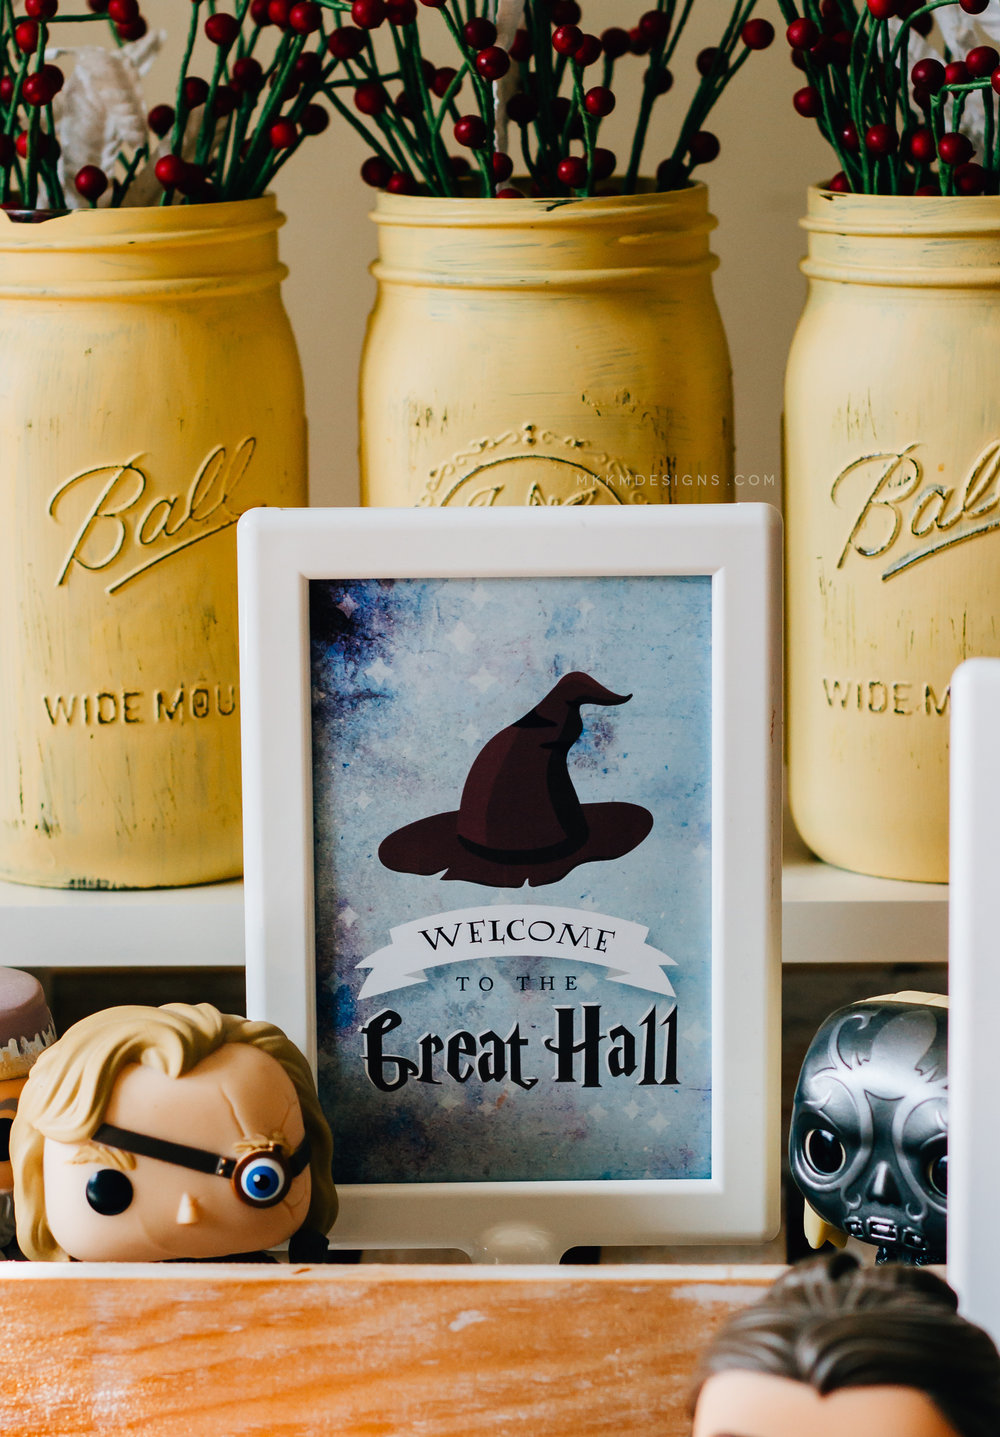 Welcome to the Great Hall, Harry Potter free printable party sign from shopmkkm.com